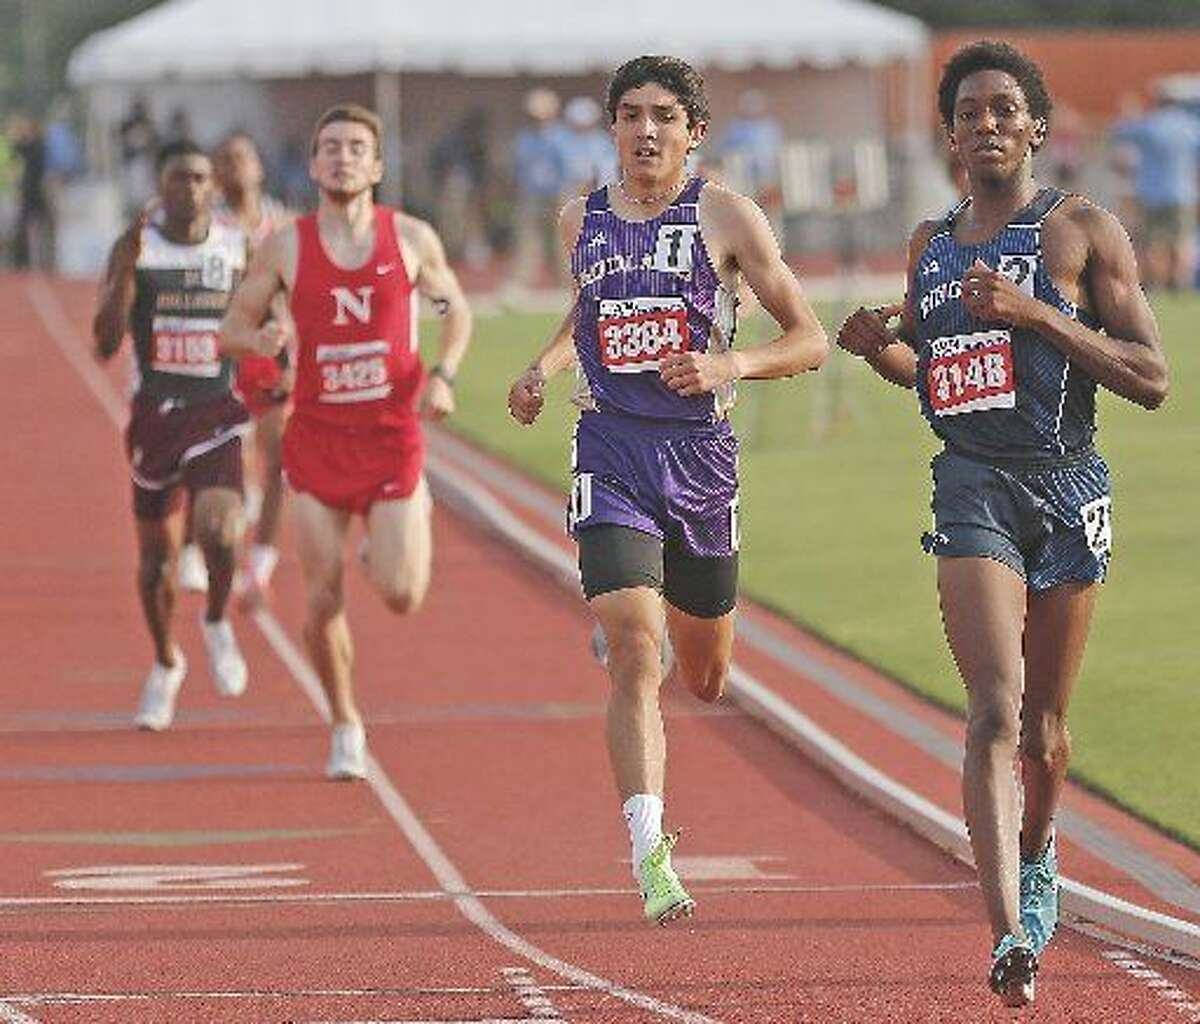 Midland High's Bryce Hoppel runs to a second place finish in the Class 6A 800 meter run, Saturday at the UIL State Track and Field Championships at Mike A. Myers Stadium.